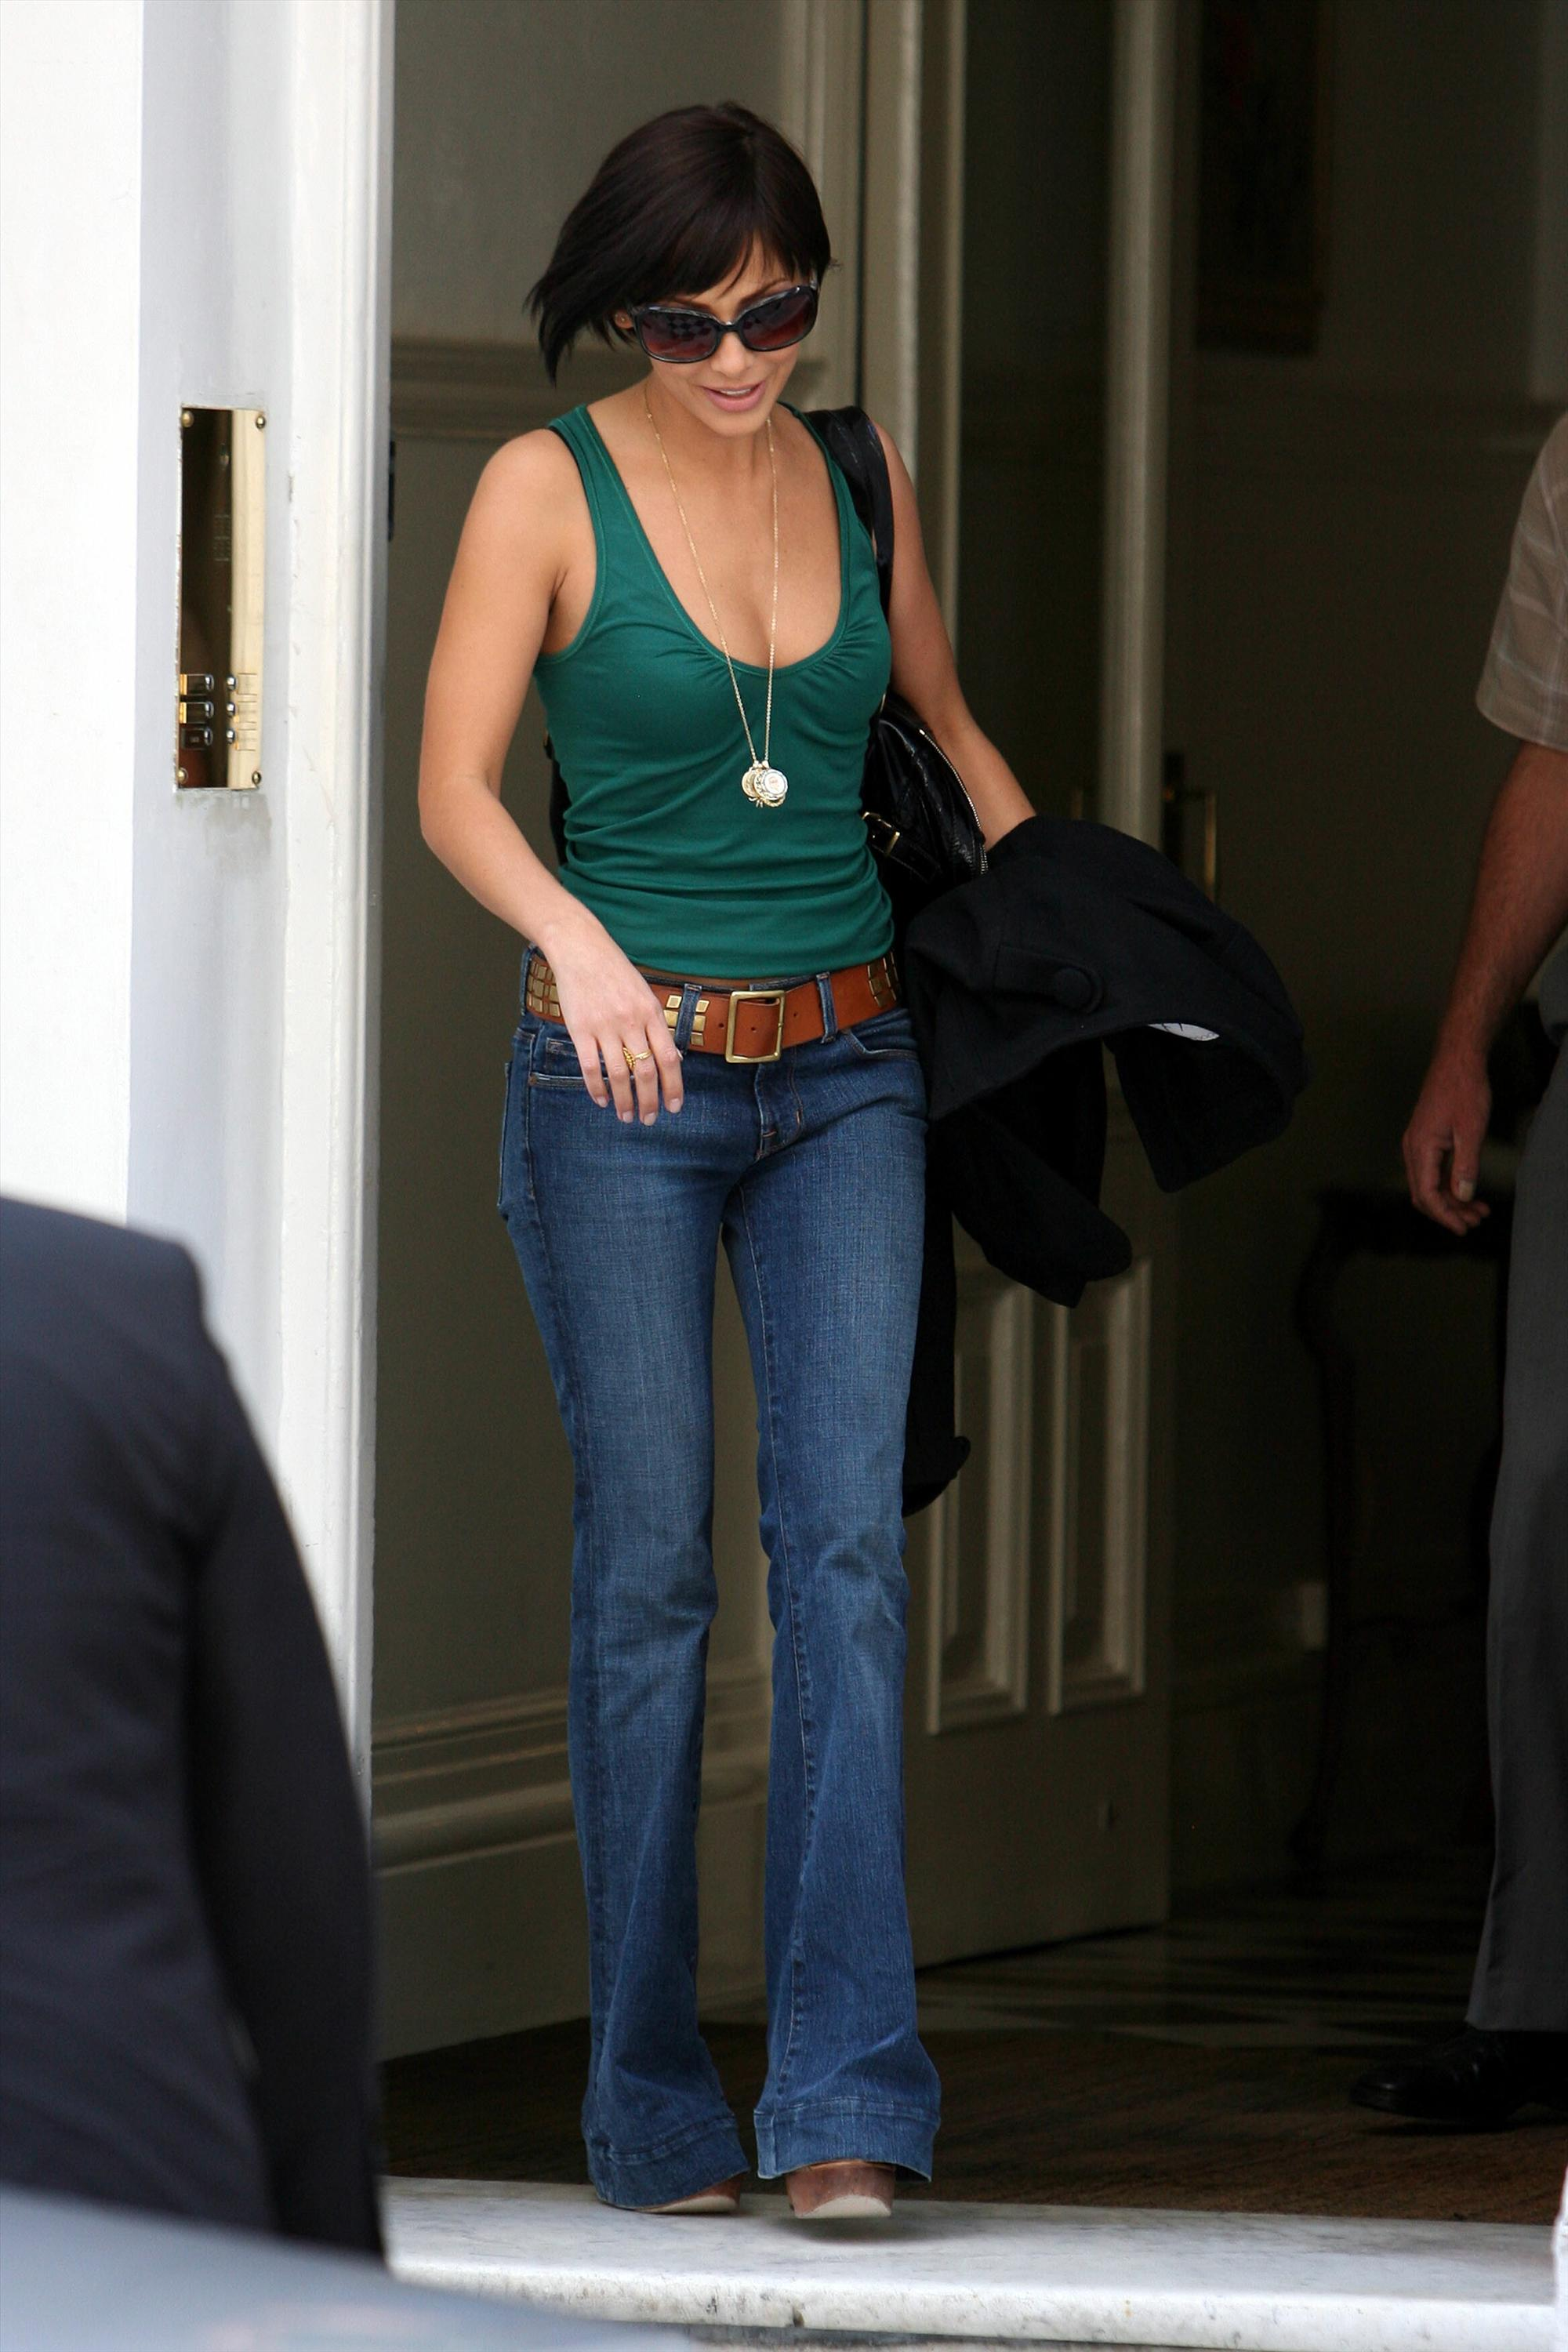 Natalie Imbruglia - Greenish top and jeans-2